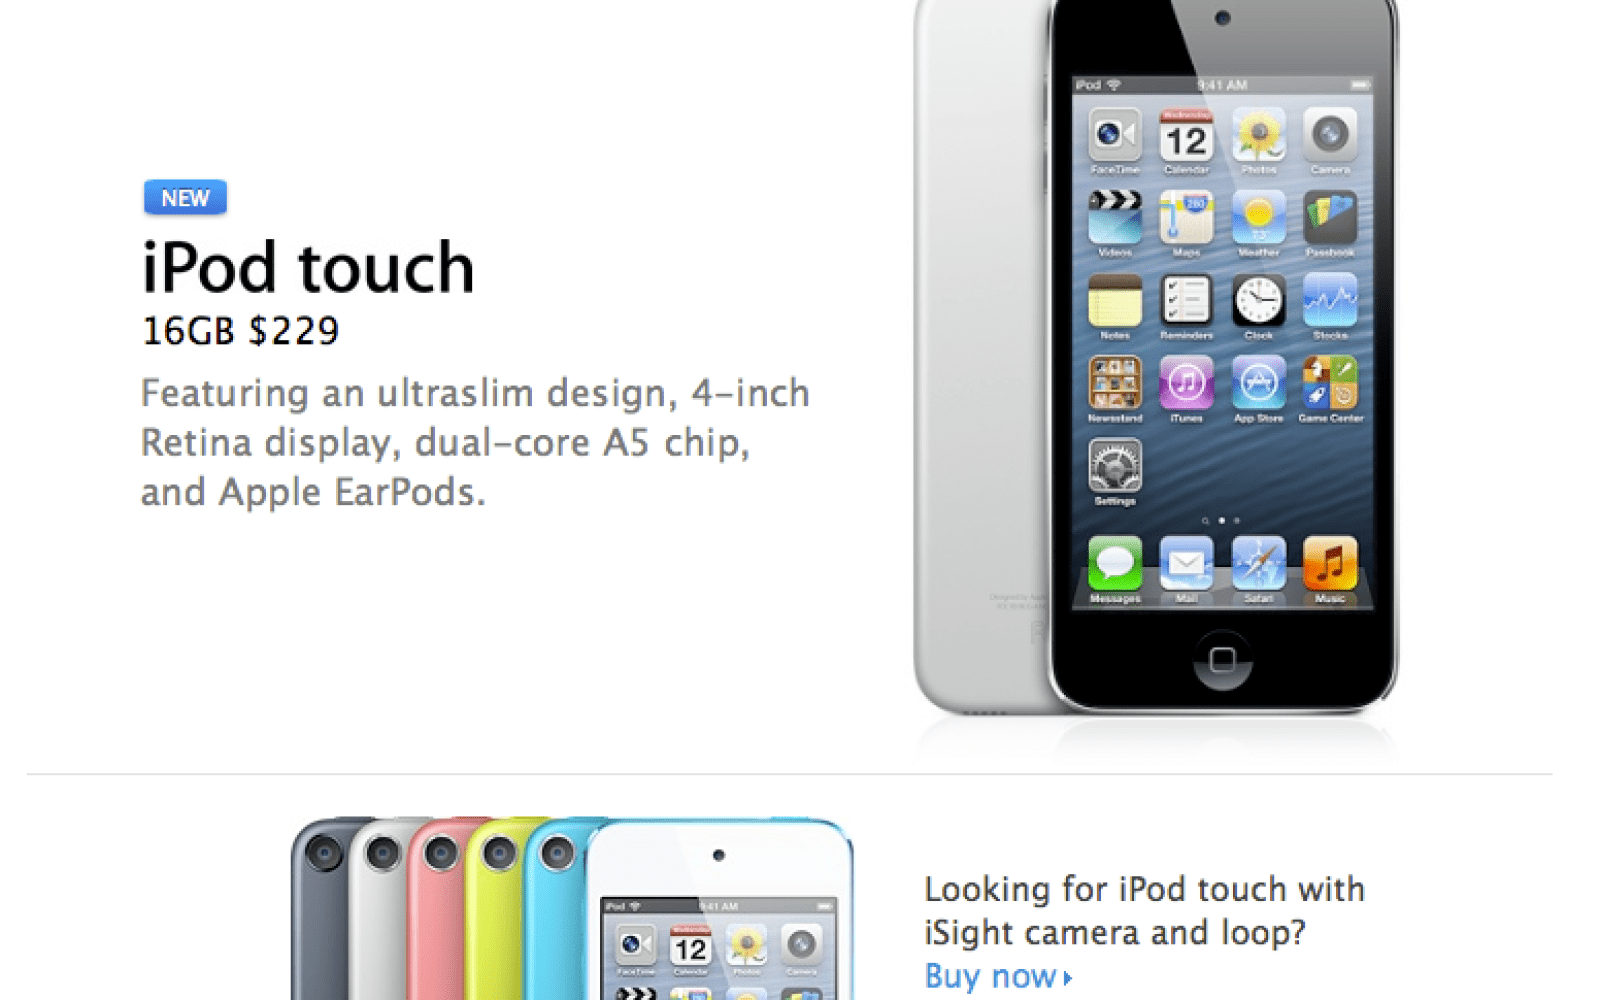 Apple discontinues fourth-generation iPod touch, replaces with iSight-free 4-inch model